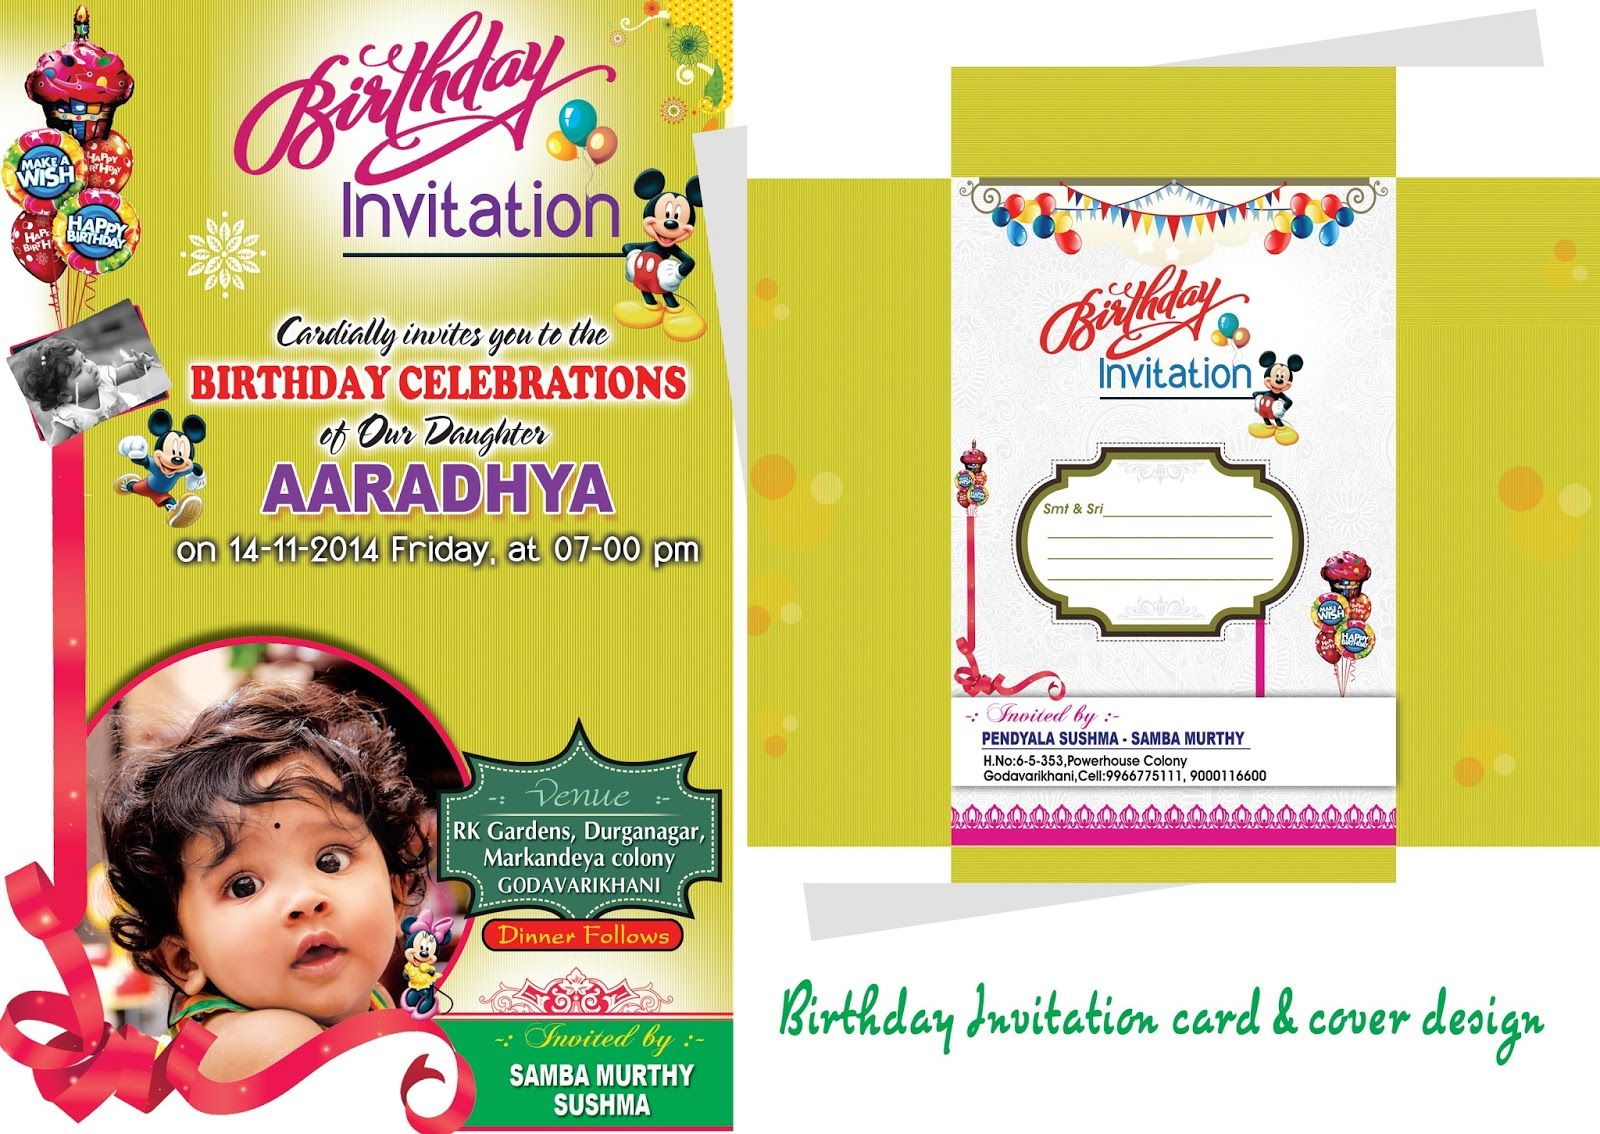 birthday flex design templates ; 69e5203062a3b7f9073550fd841cab67